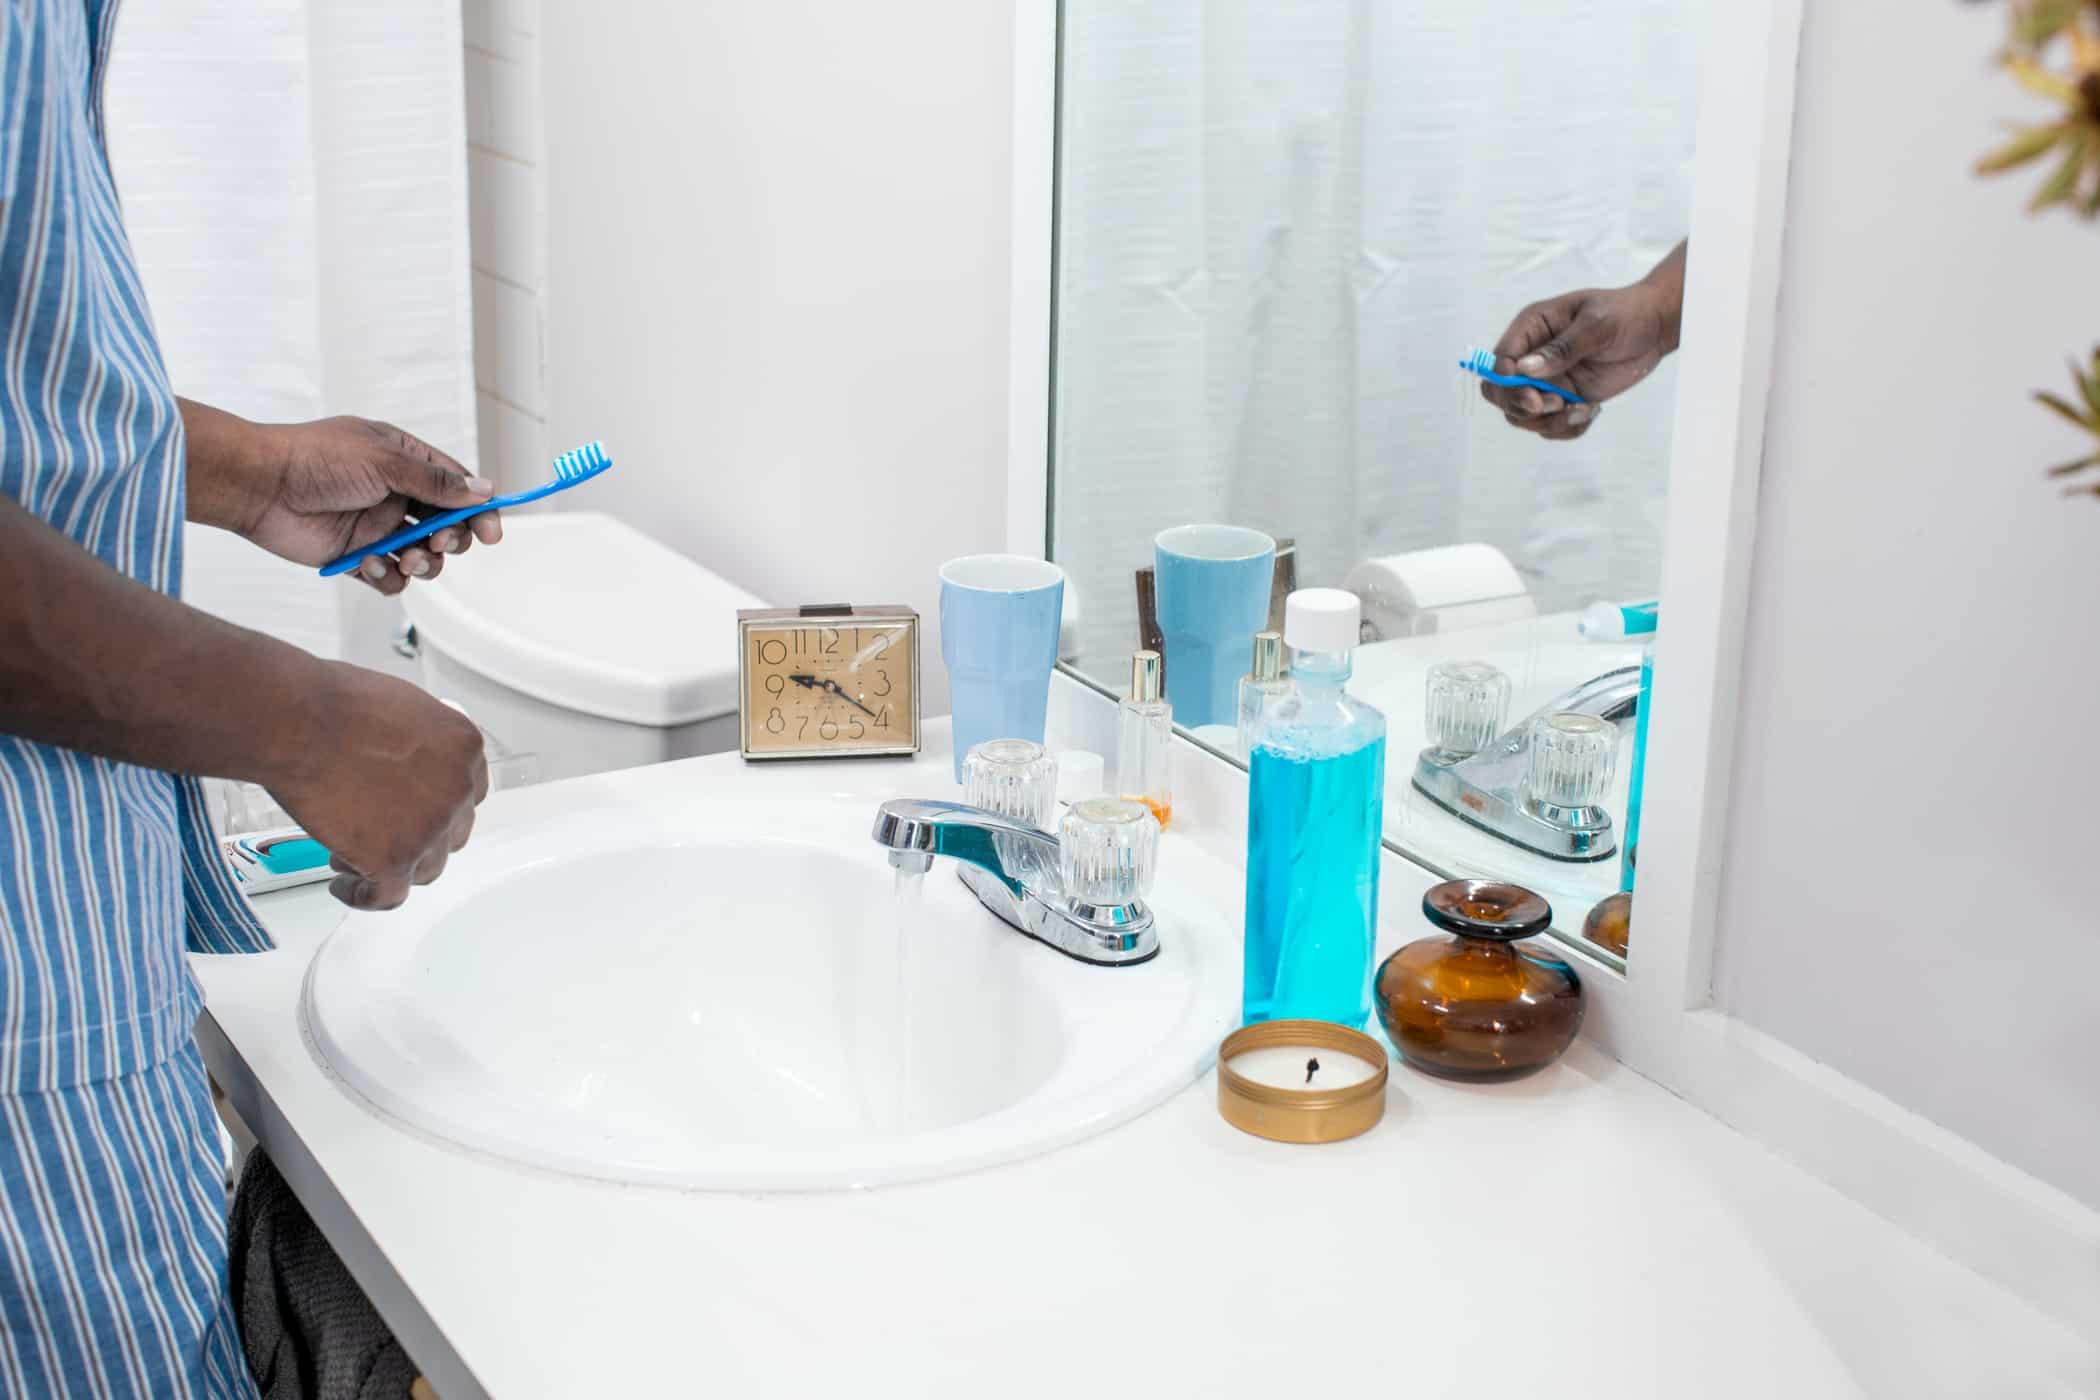 bathroom sink smell may be coming from